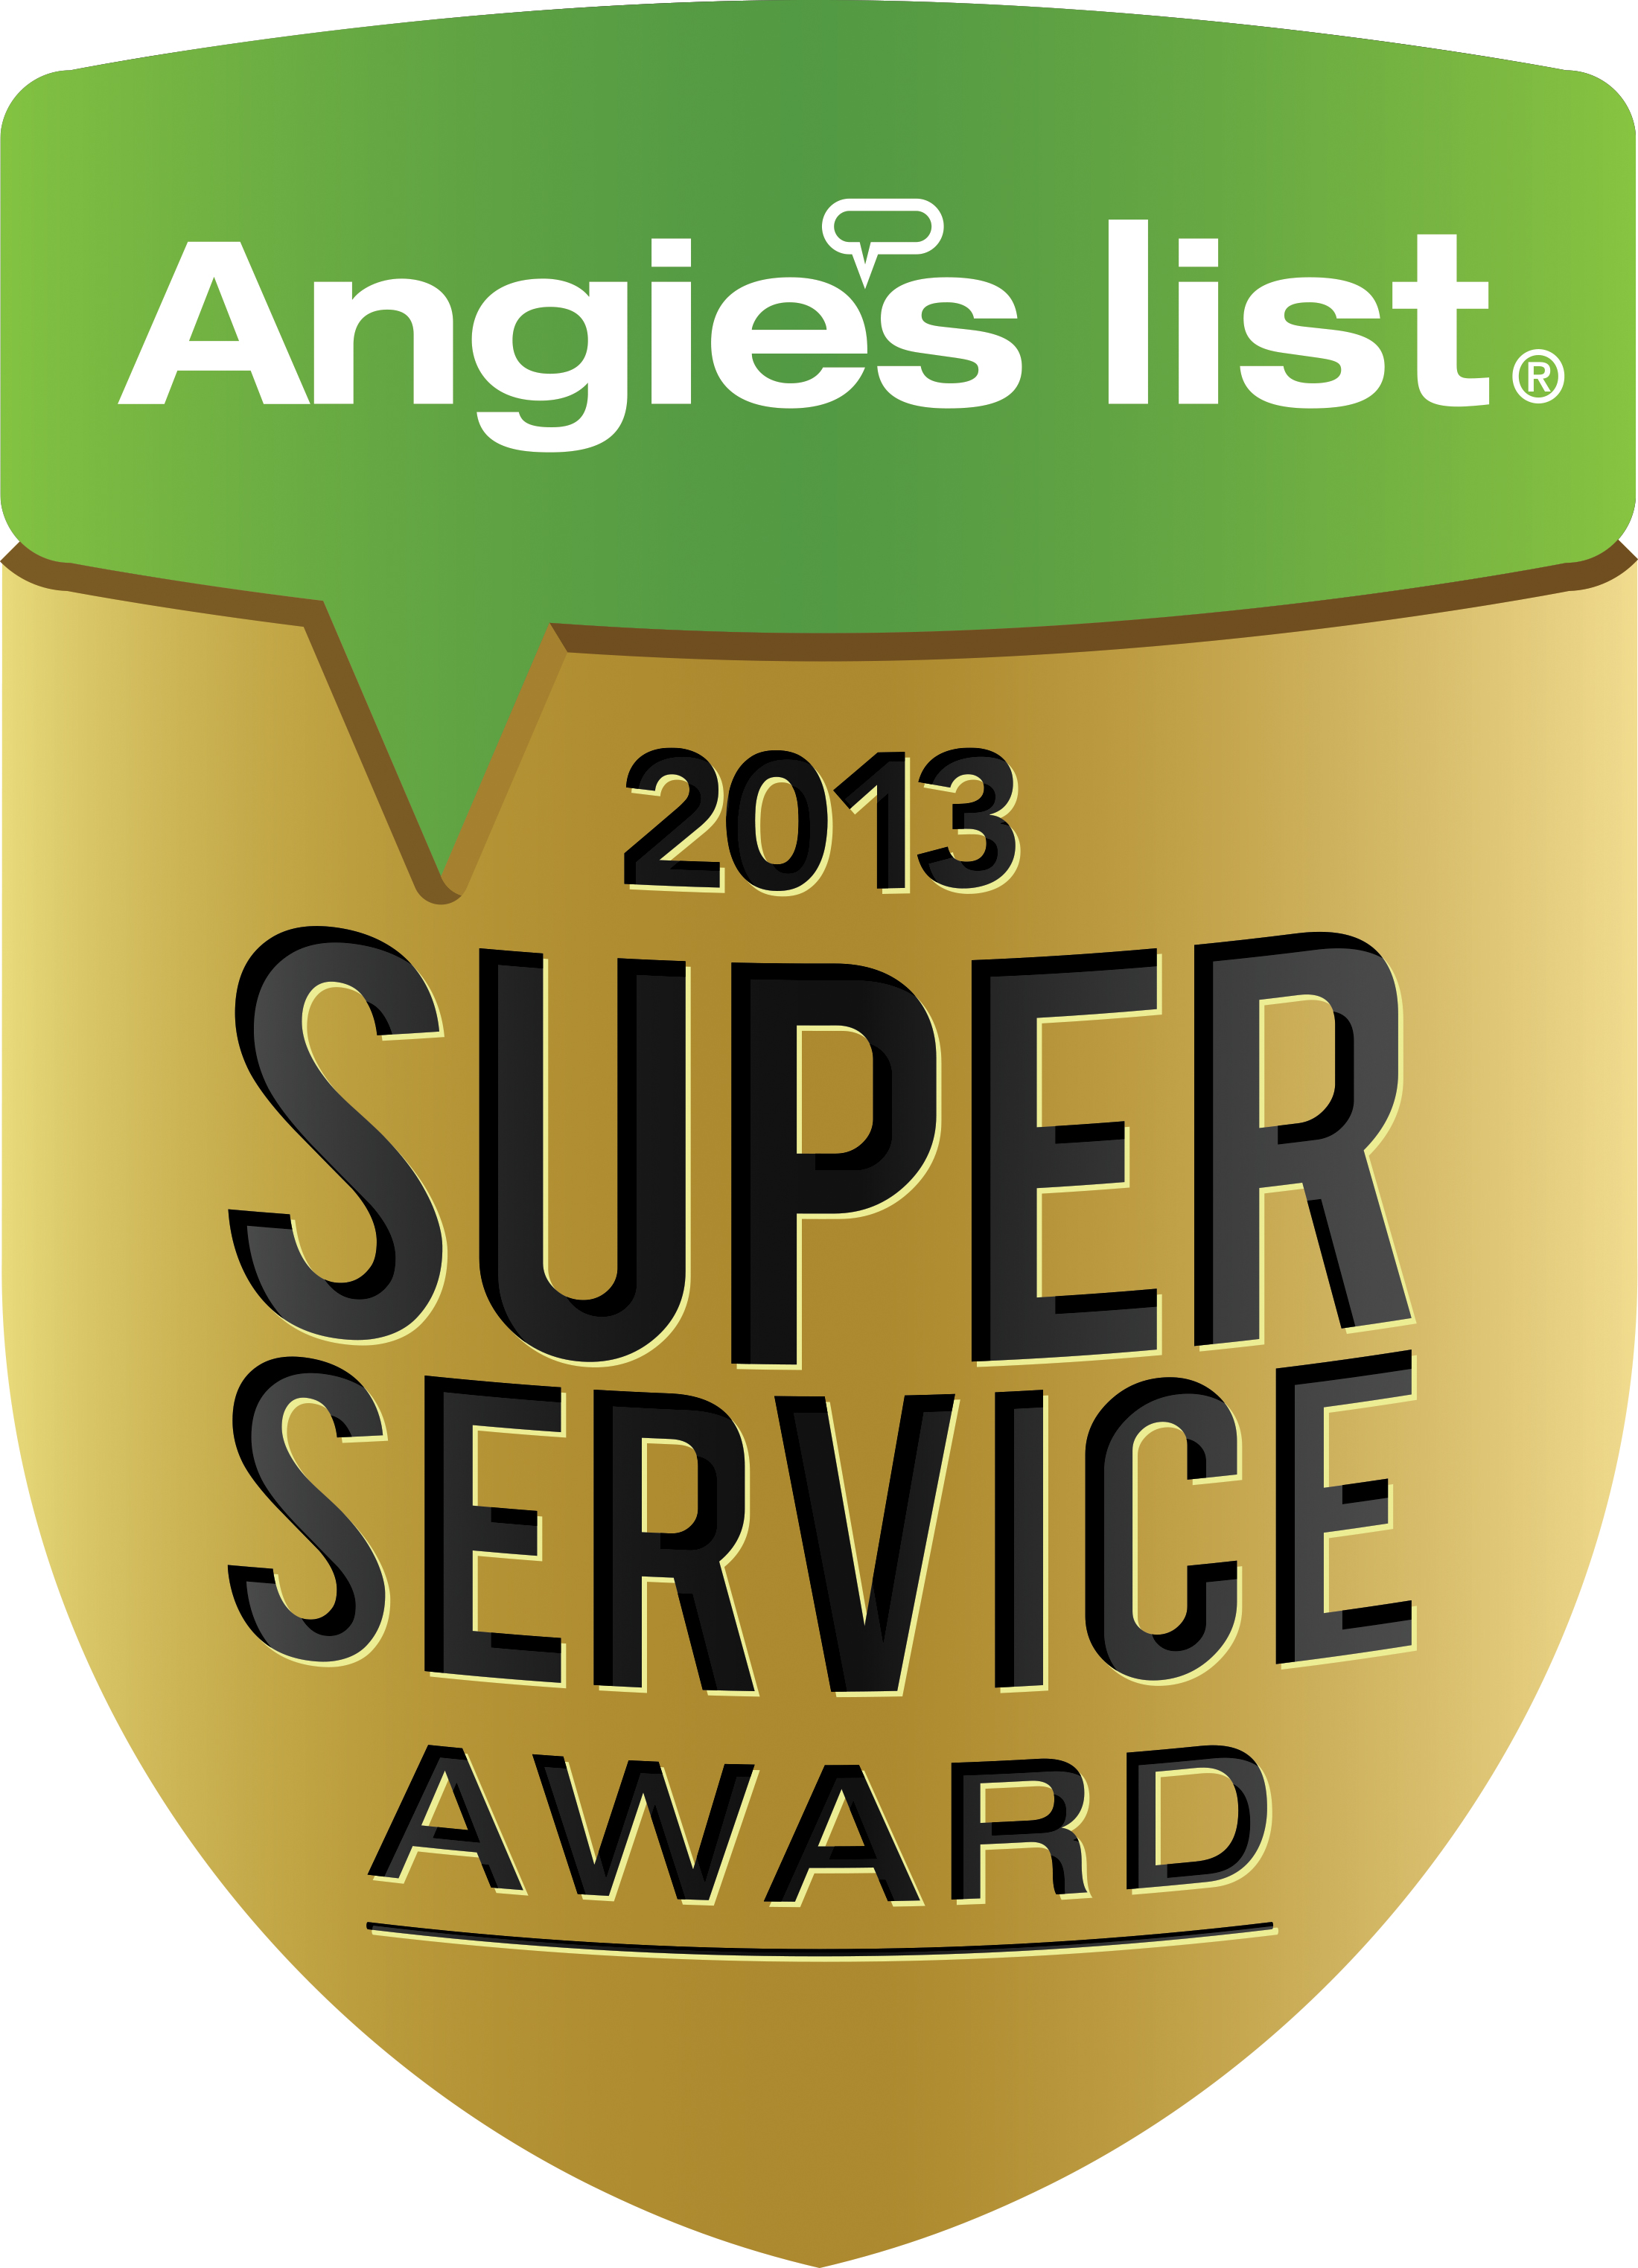 Angies List Super Award